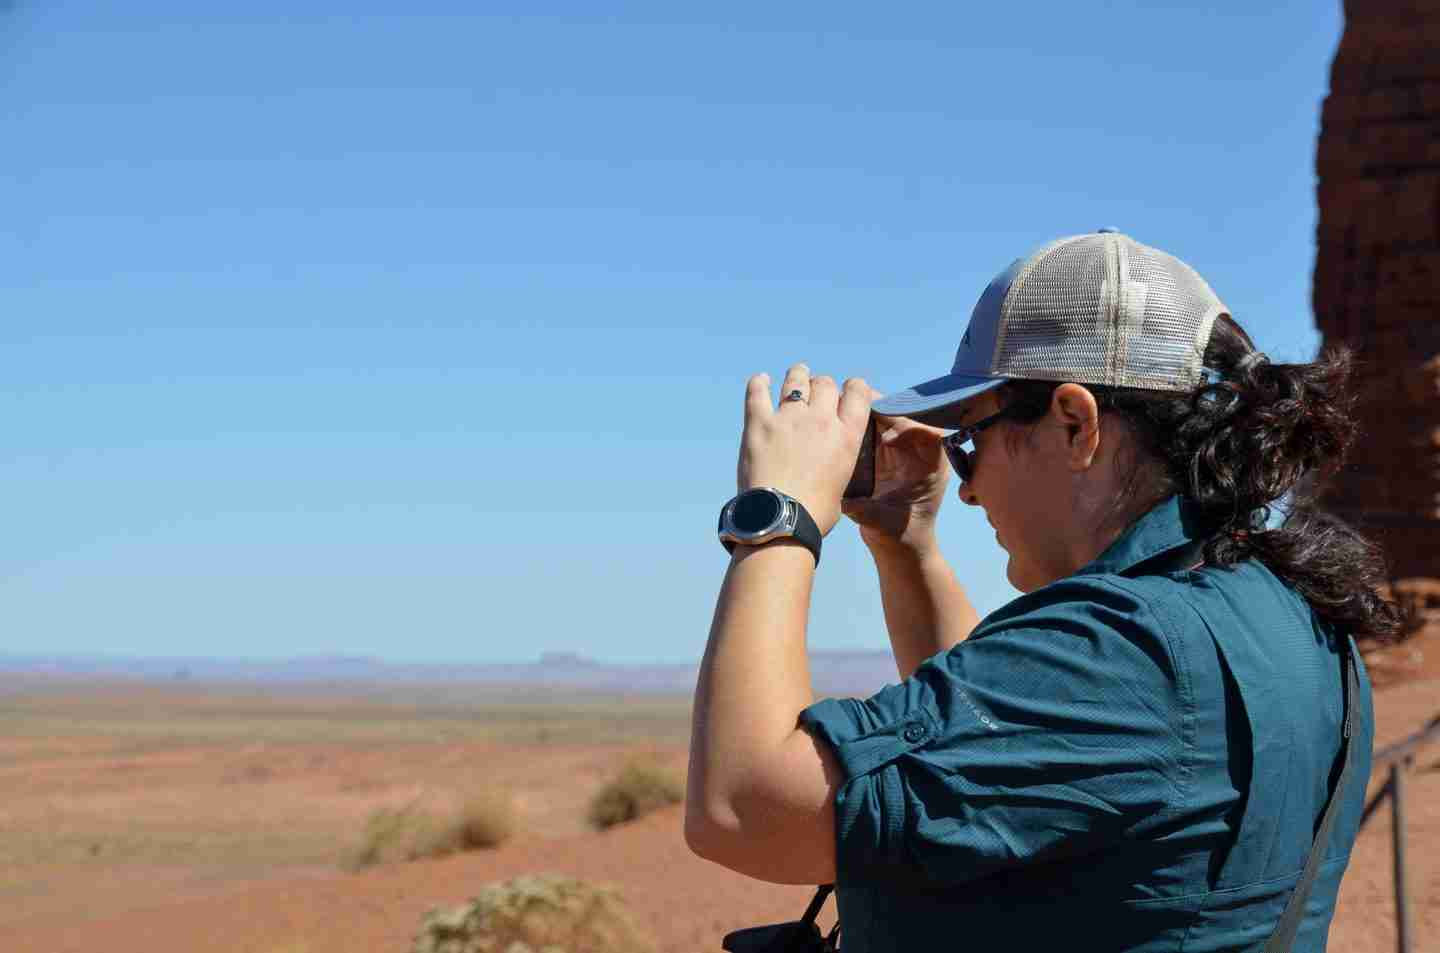 A female hiker demonstrates what to bring hiking for sun protection by wearing a UV-resistant shirt and a hat as she takes a photo in the desert.